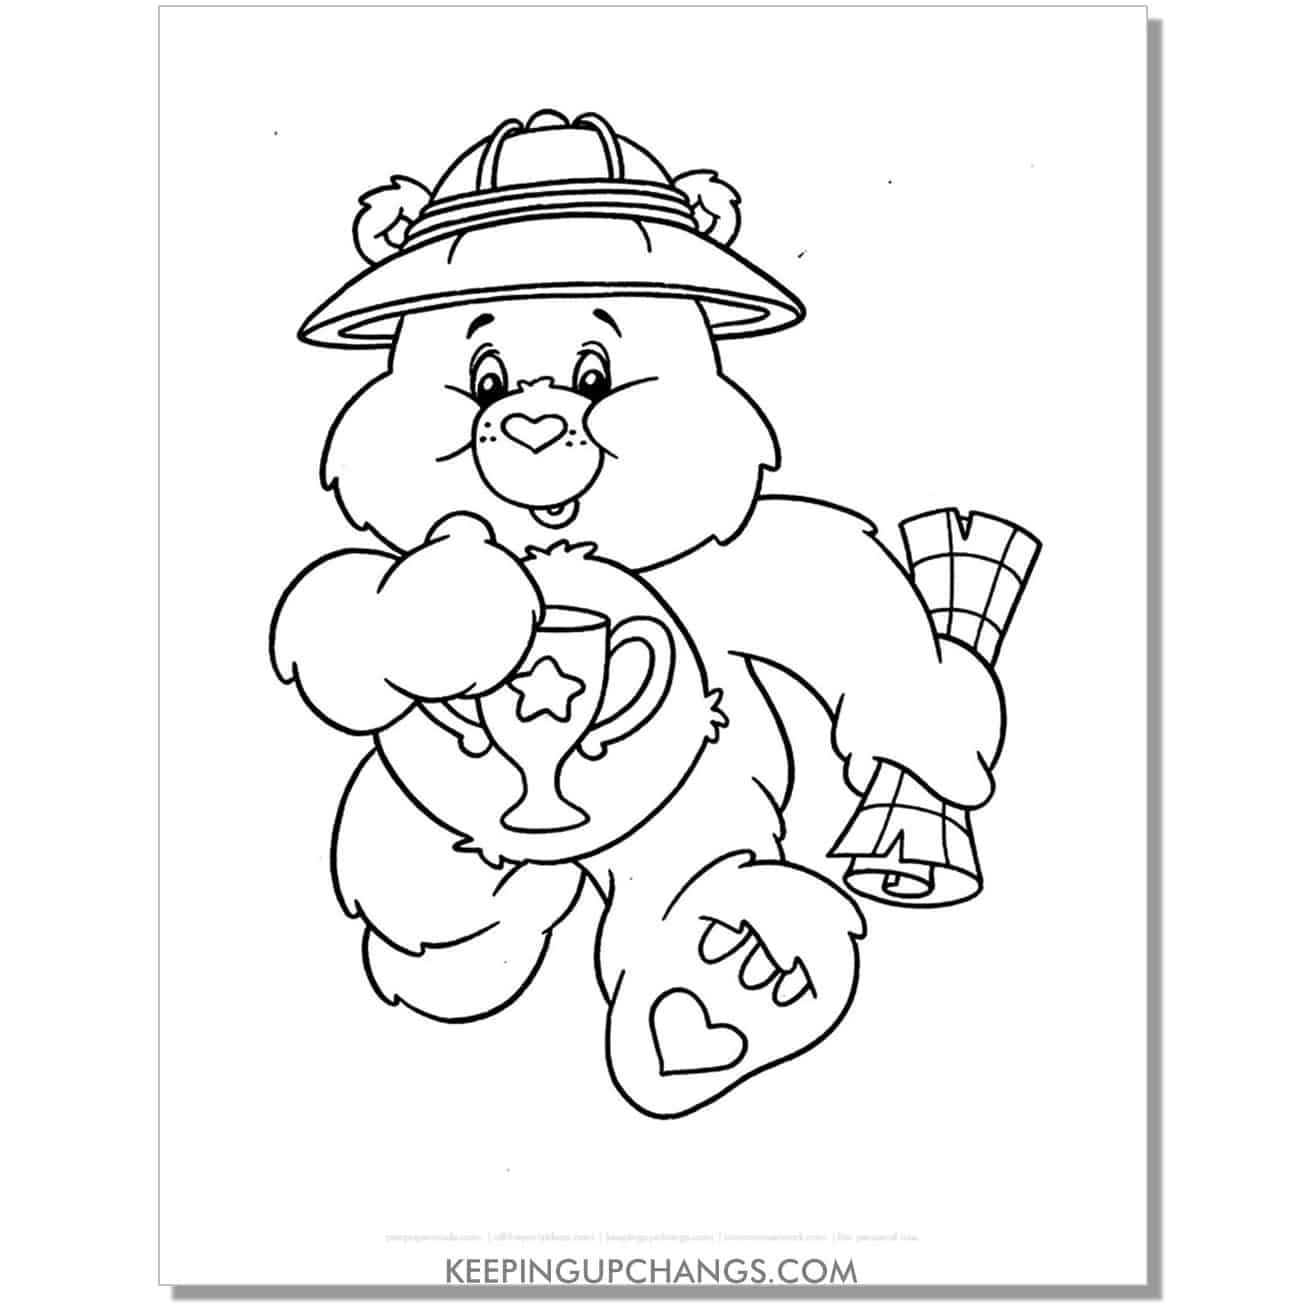 champ care bear coloring page with explorer hat and map.